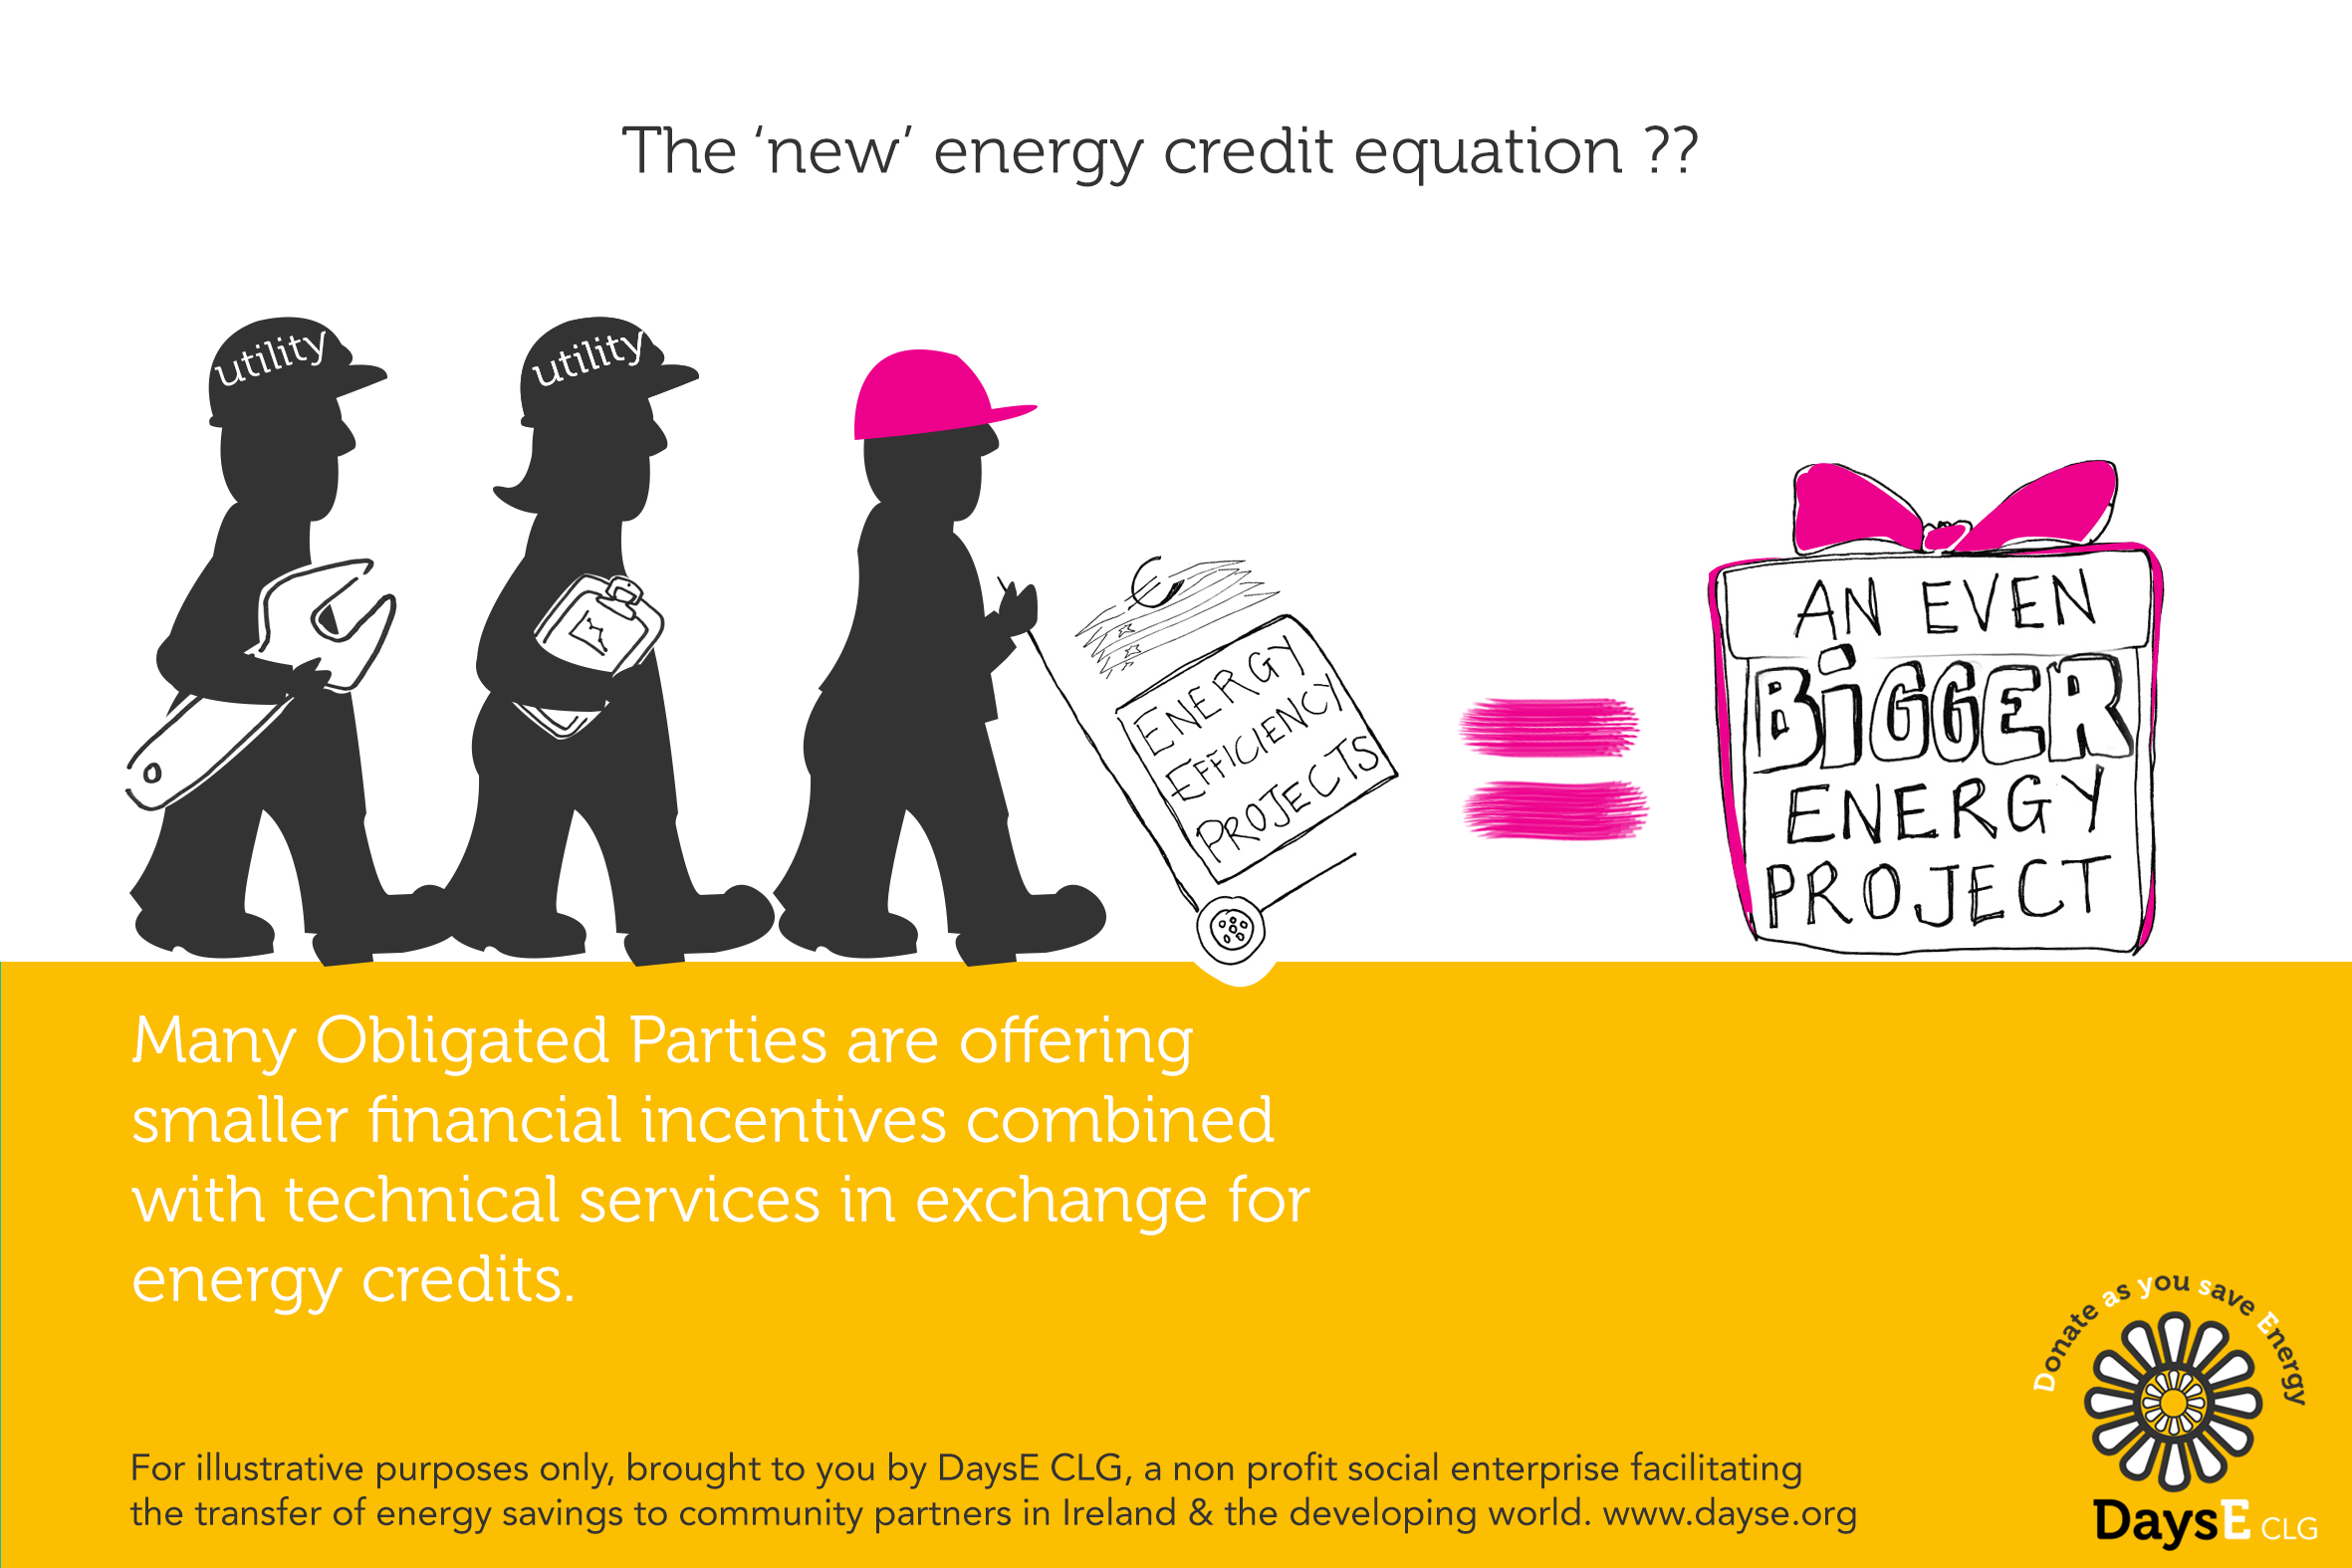 Obligated Parties are offering services in exchange for Energy Credits